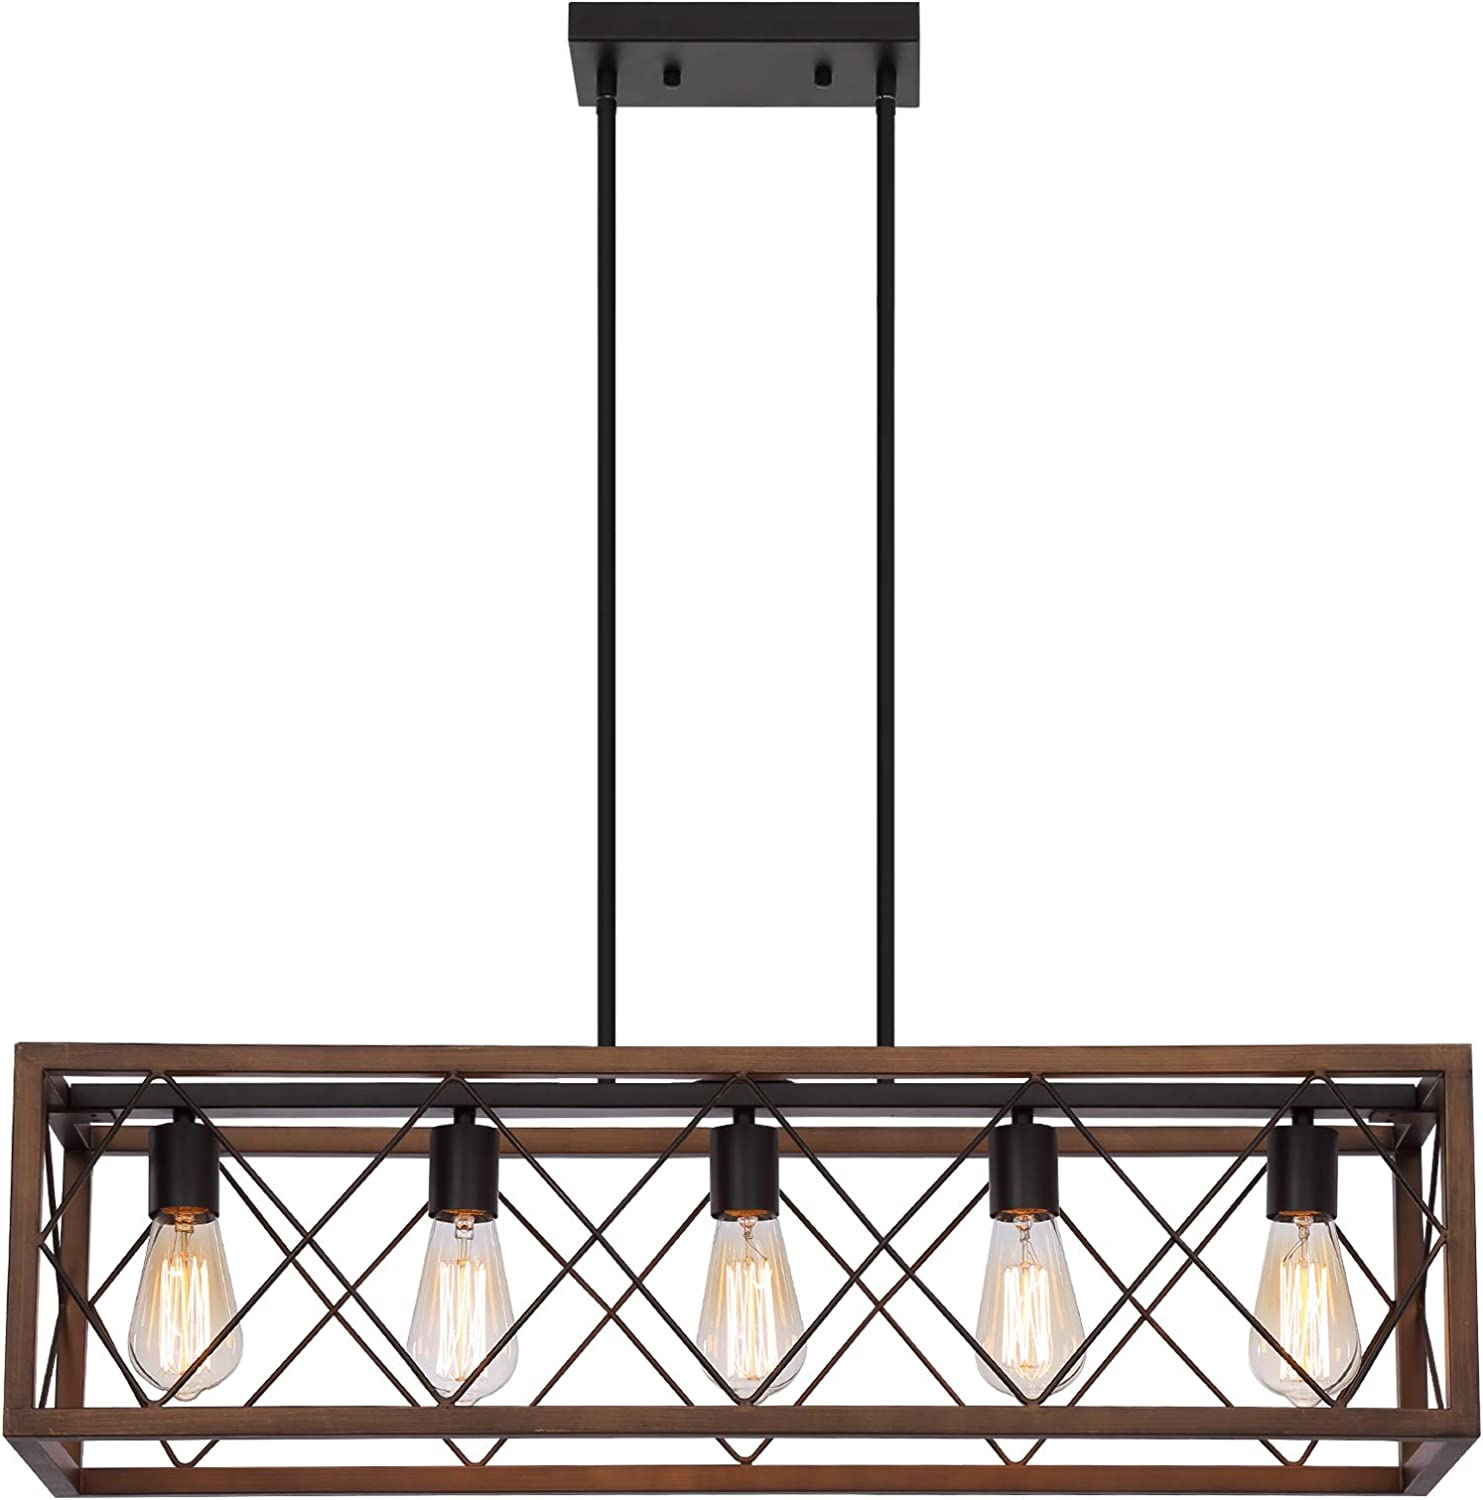 QS Farmhouse Spasm price Island Chandelier Light Fixture Brown+ORB Rectang Max 75% OFF